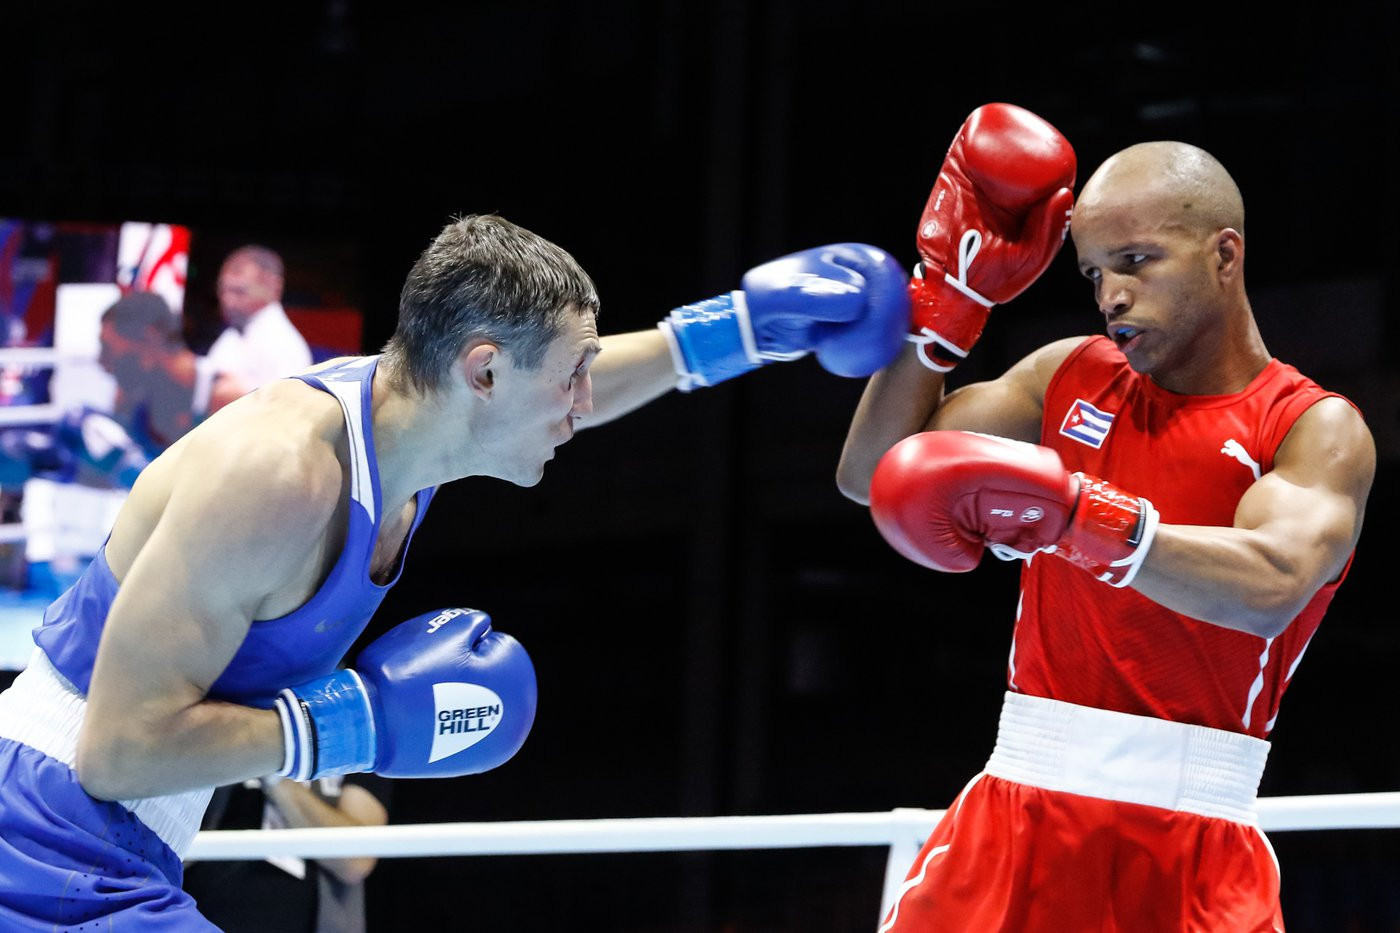 AIBA Men's World Championships 2019: Day 11 of competition